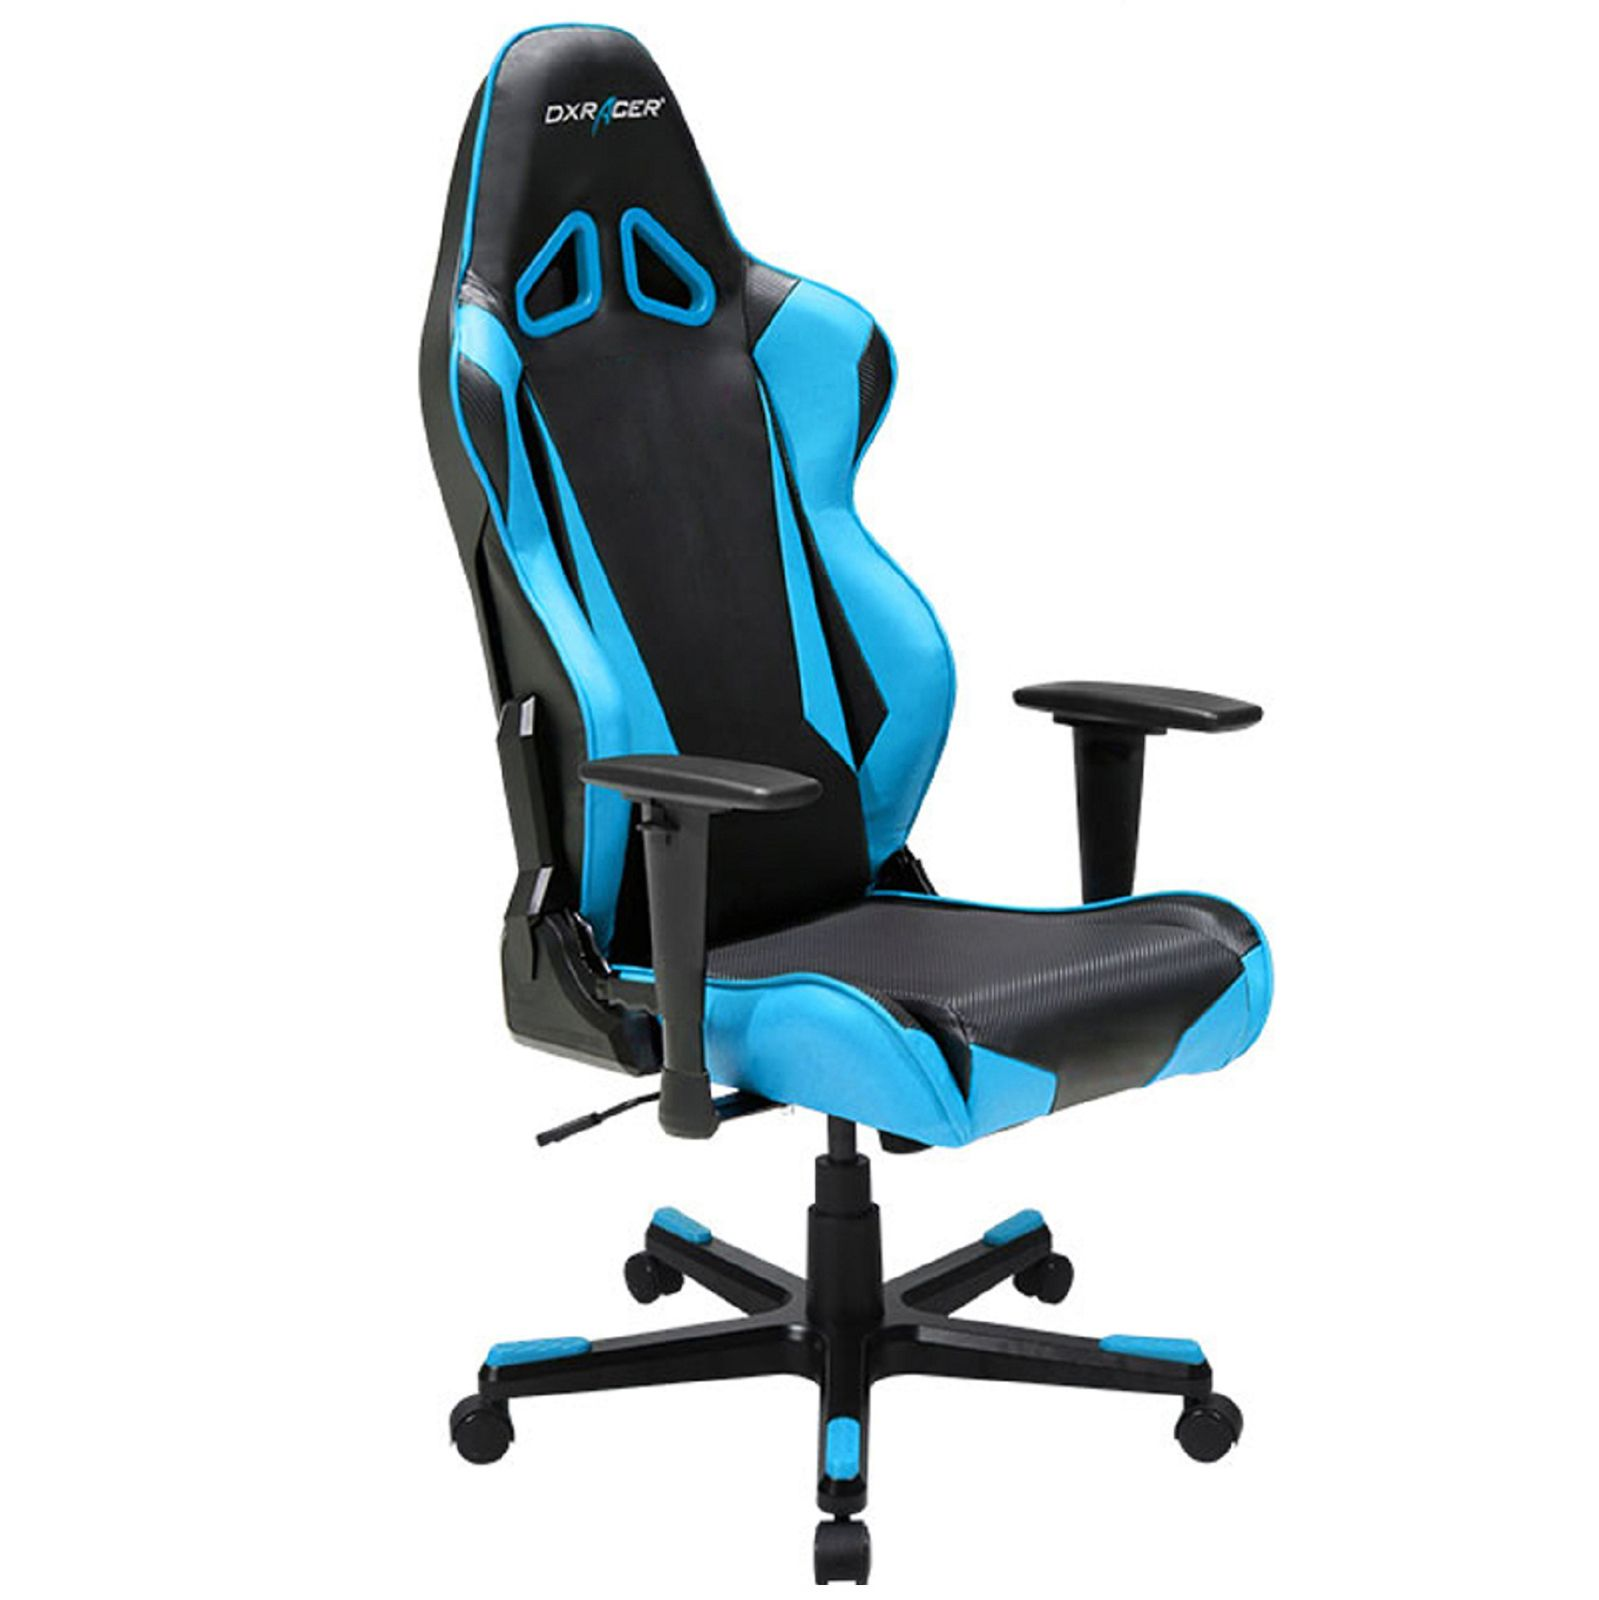 Dxracer Rb1nb Computer Chair Office Chair Sports Chair Gaming Black And Blue Gaming Chair Sport Chair Racing Chair